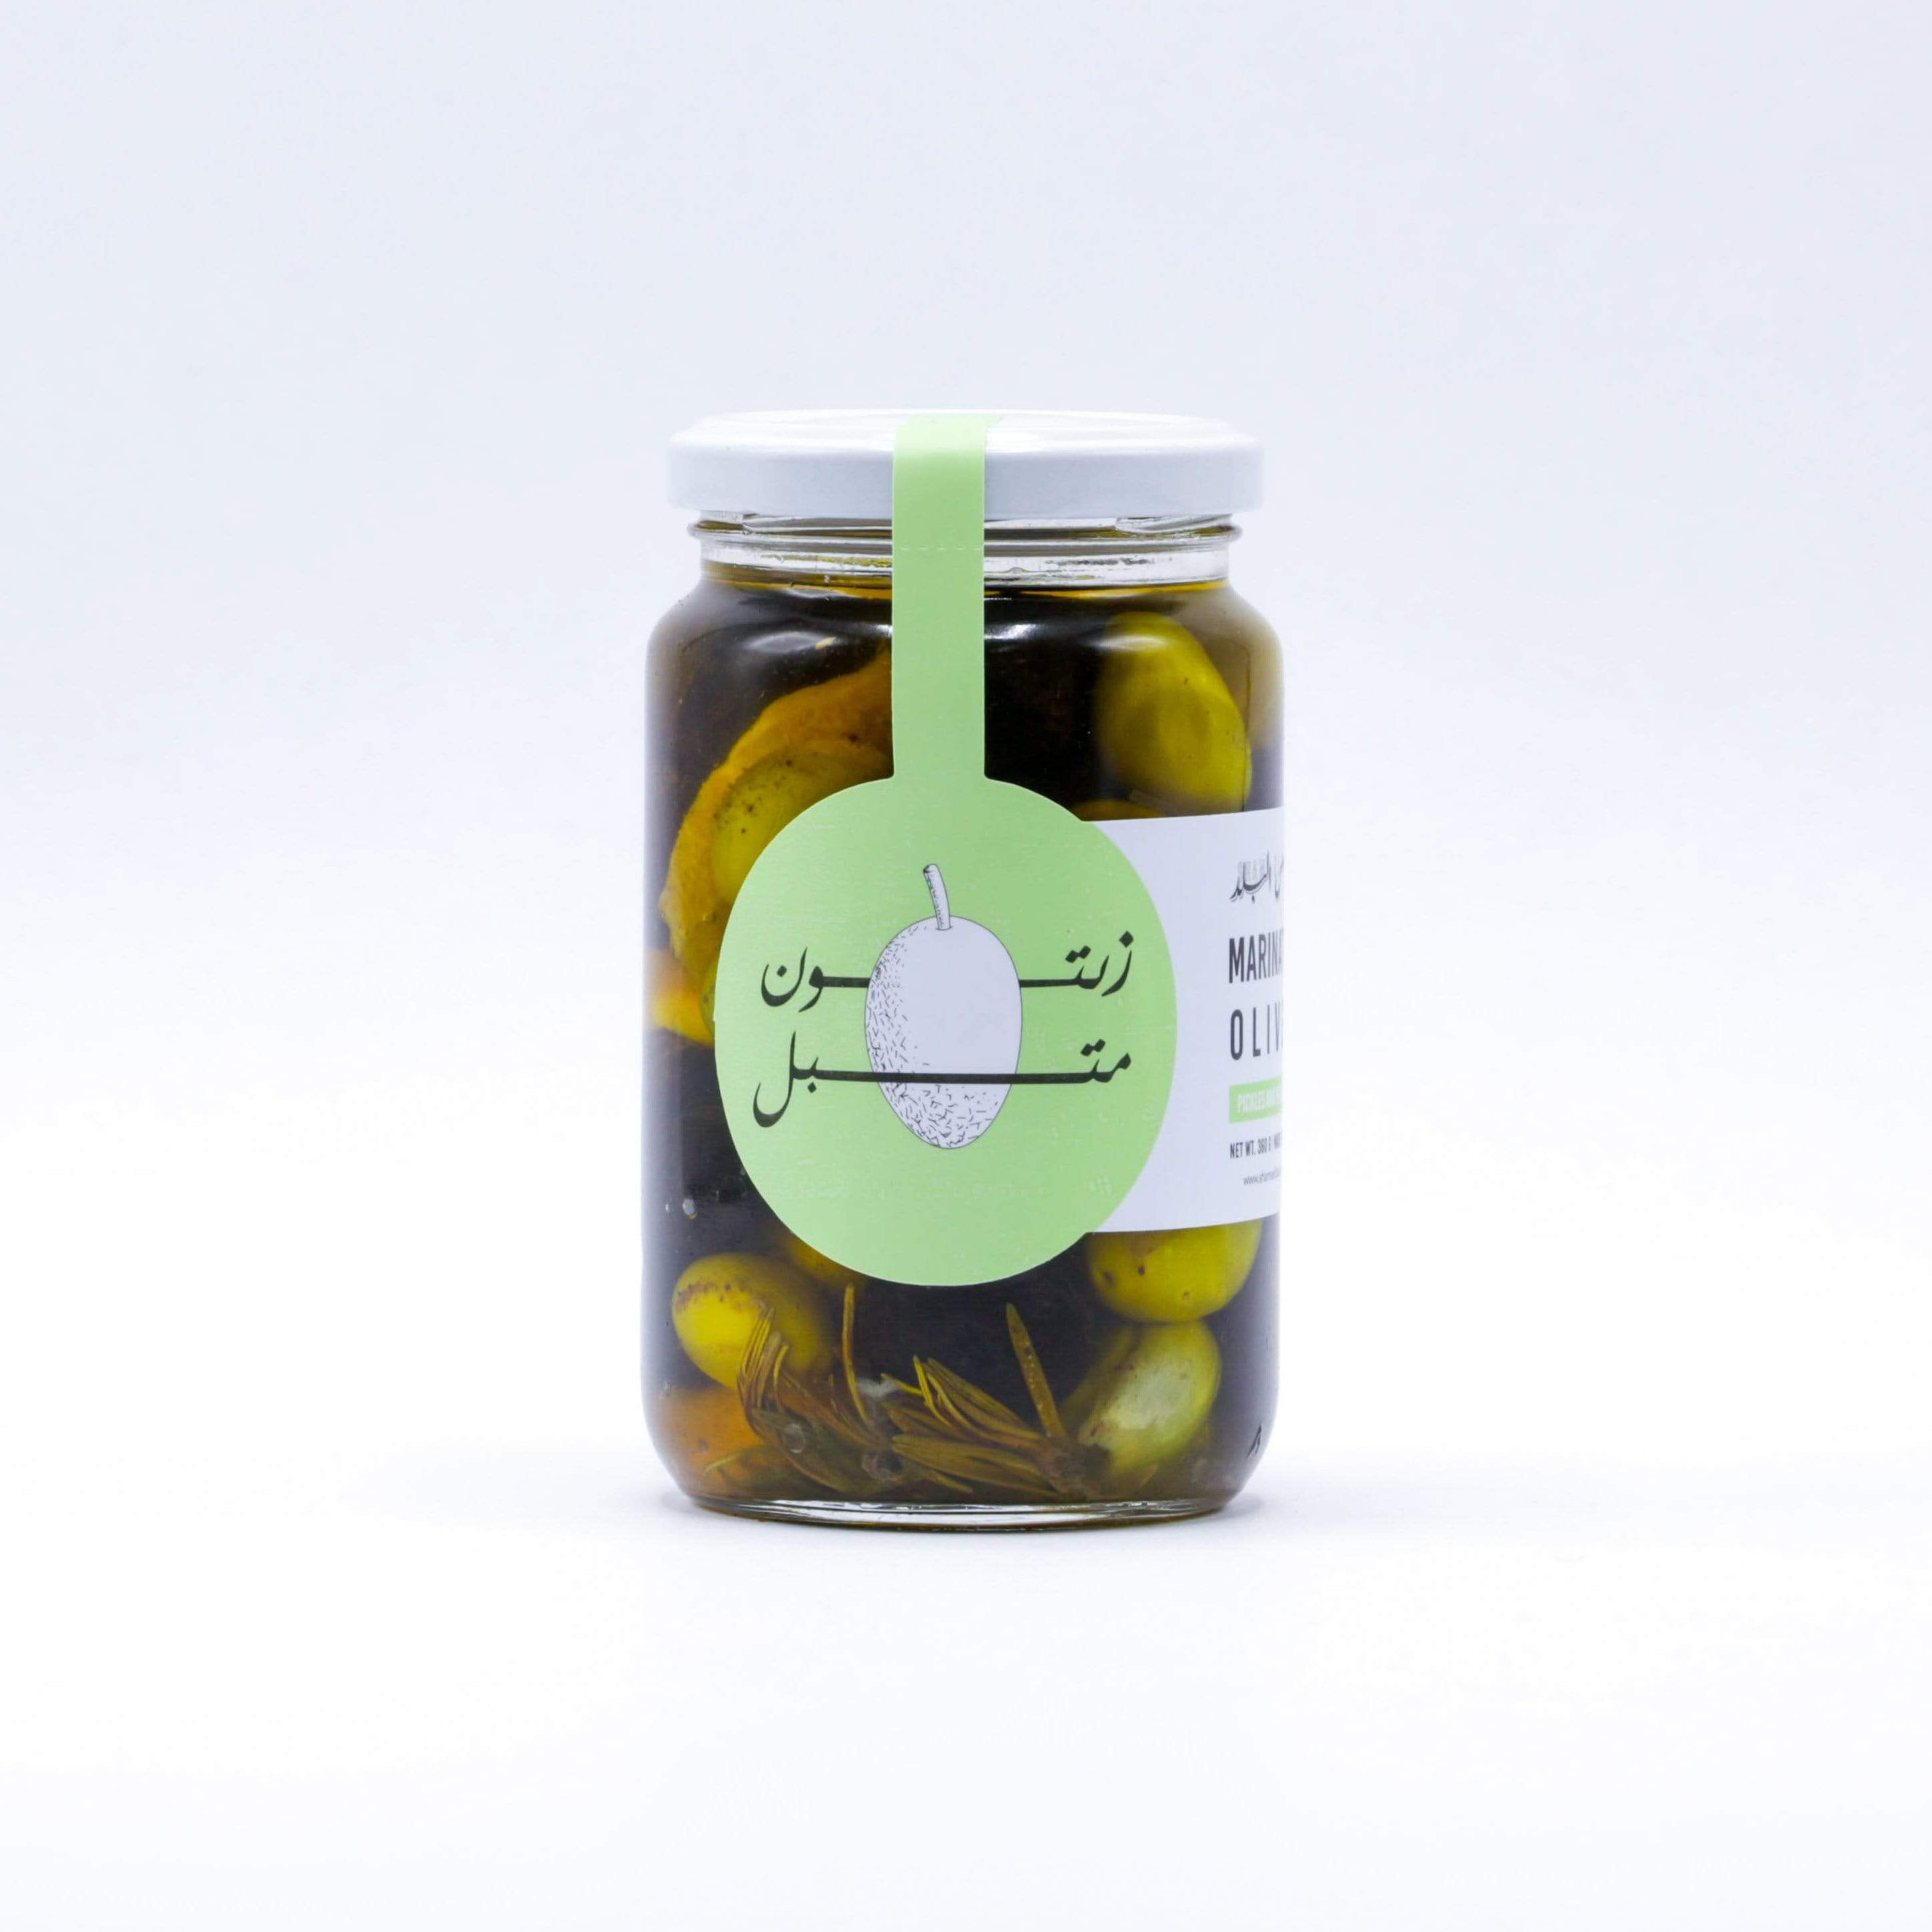 Shams El Balad Grocery Shams Marinated Olives